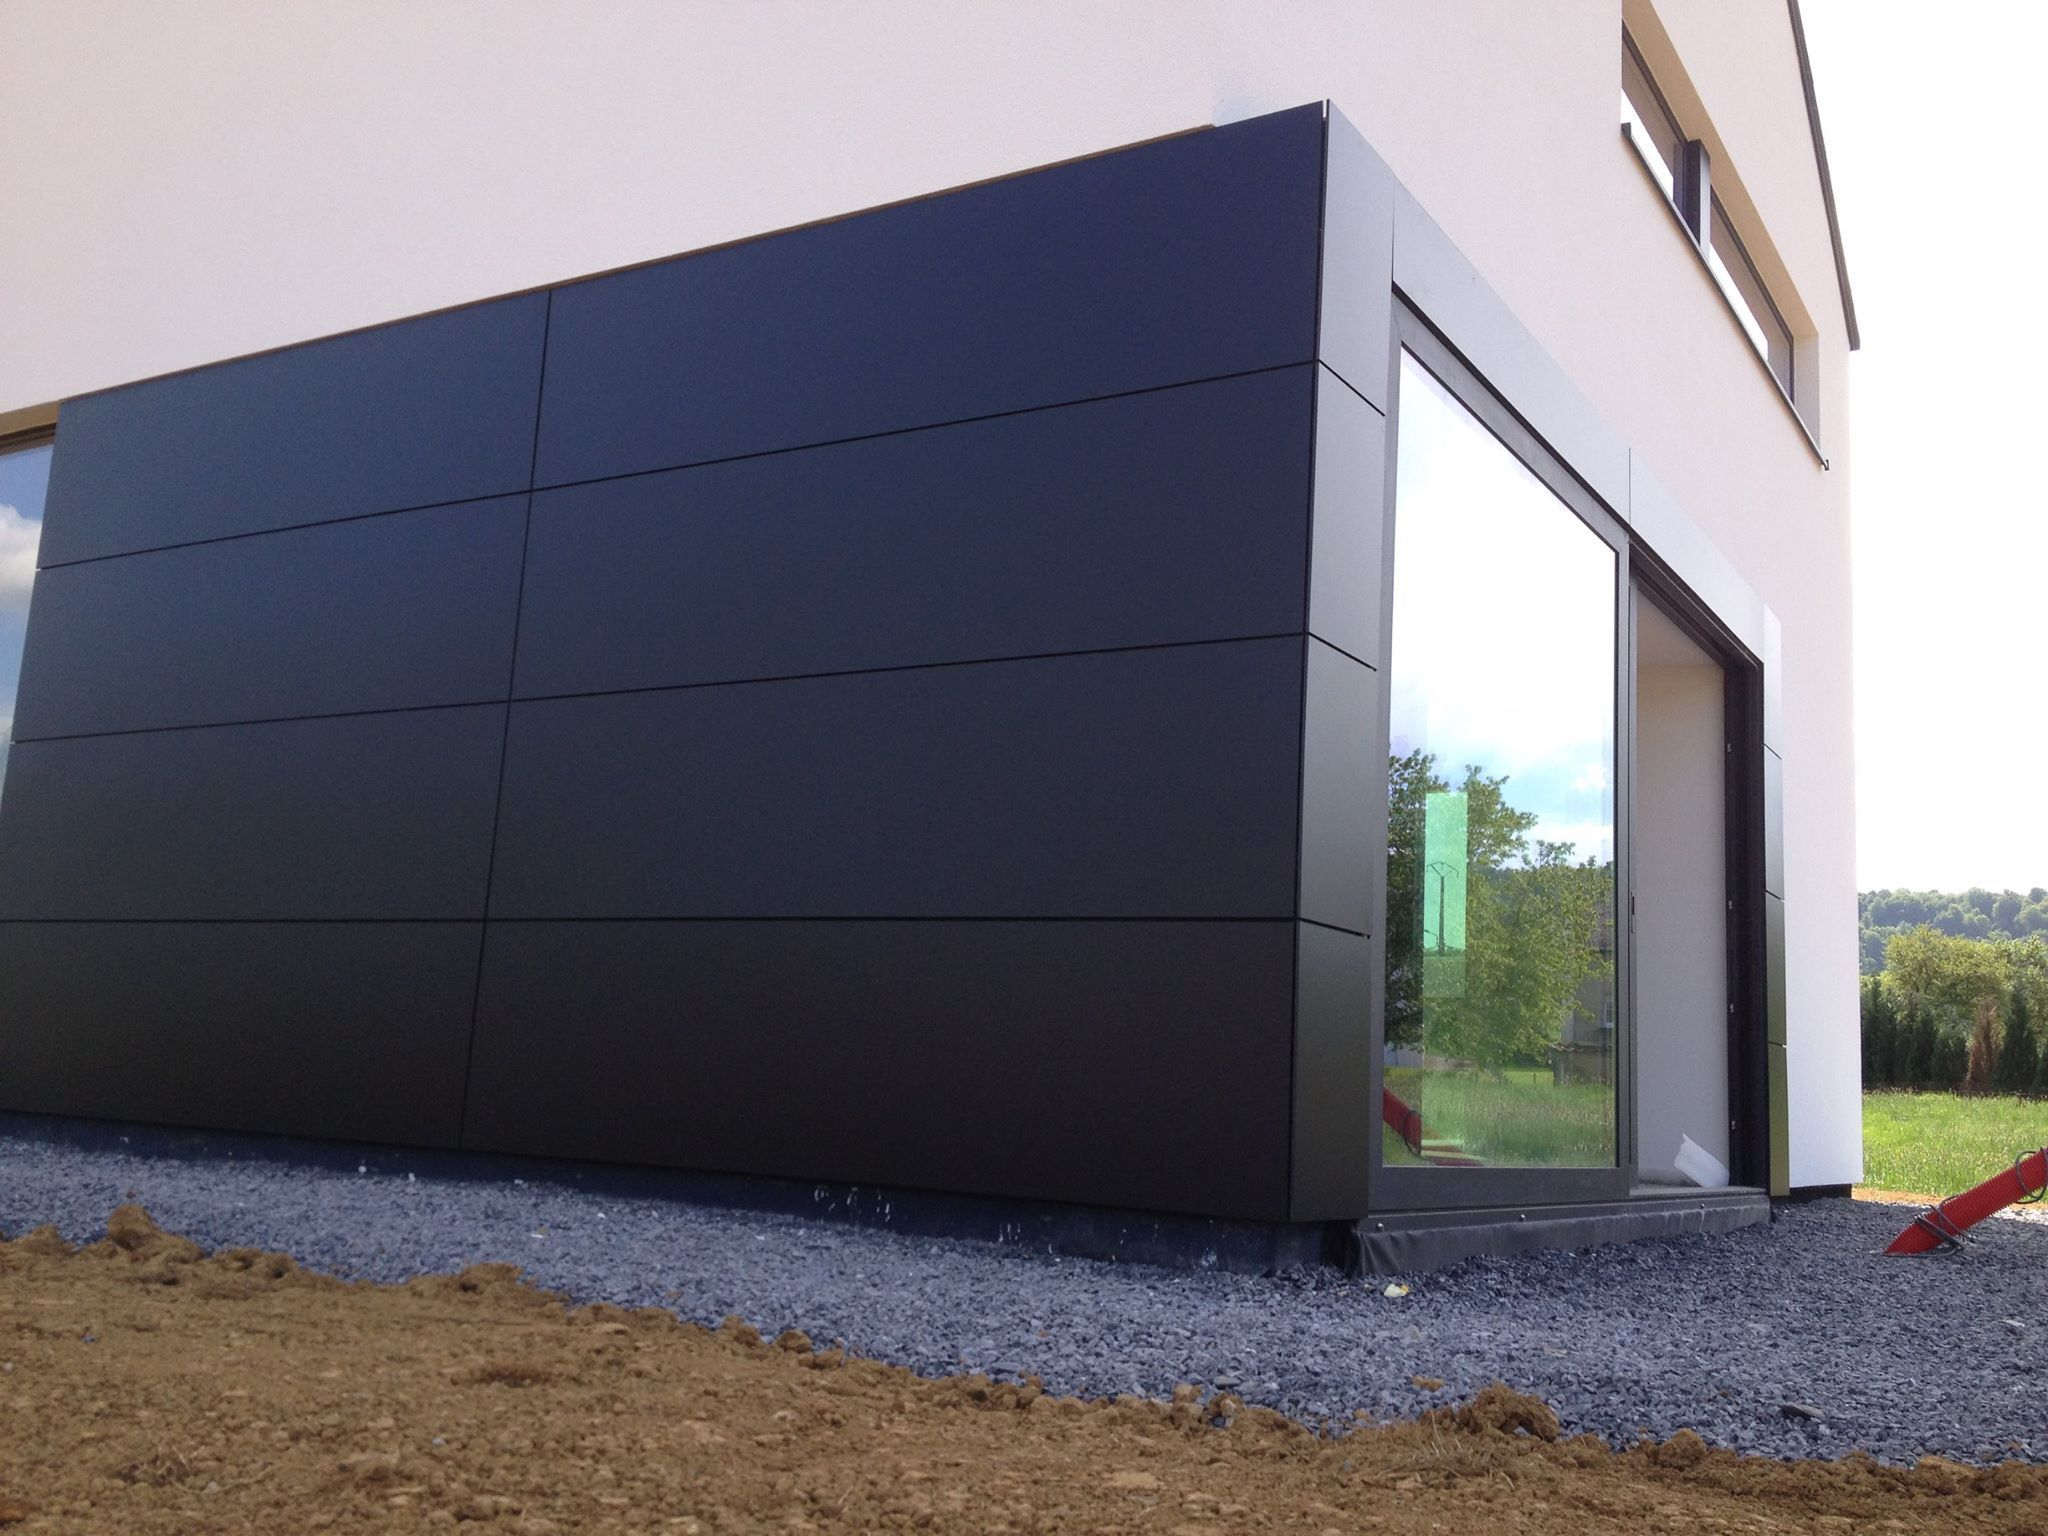 bardage trespa hm concept haus pinterest cladding exterior cladding and exterior siding. Black Bedroom Furniture Sets. Home Design Ideas